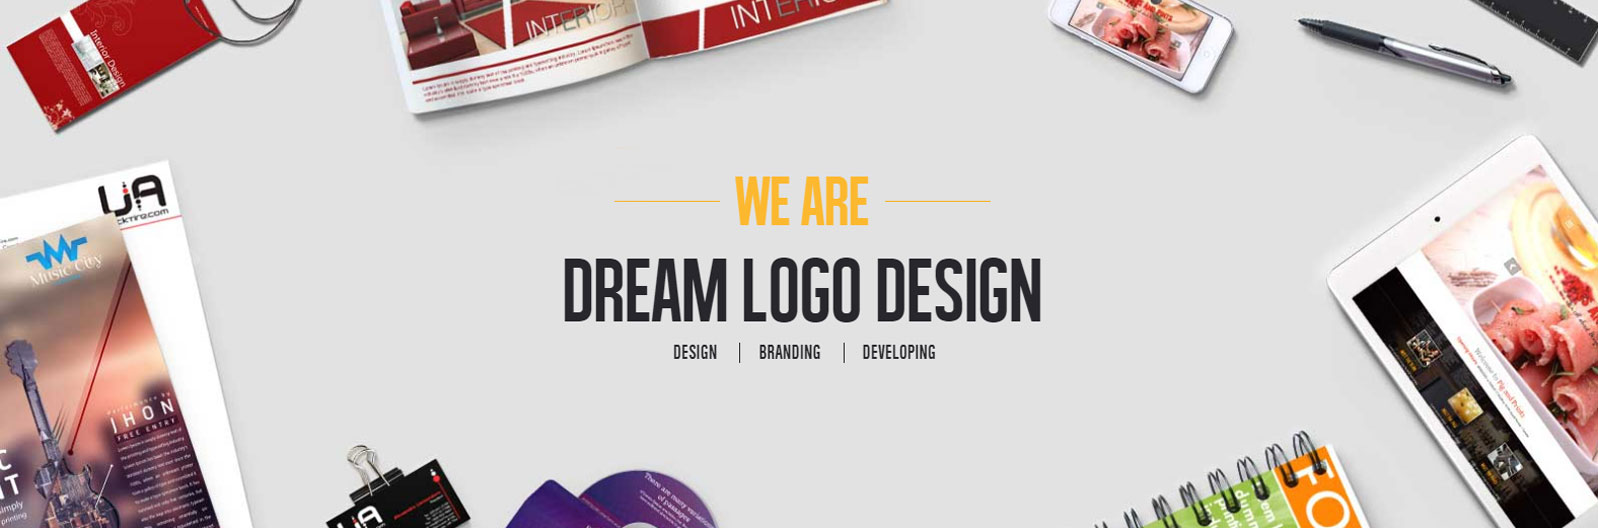 Alan Brereton 3D Logo Design – DreamLogoDesign